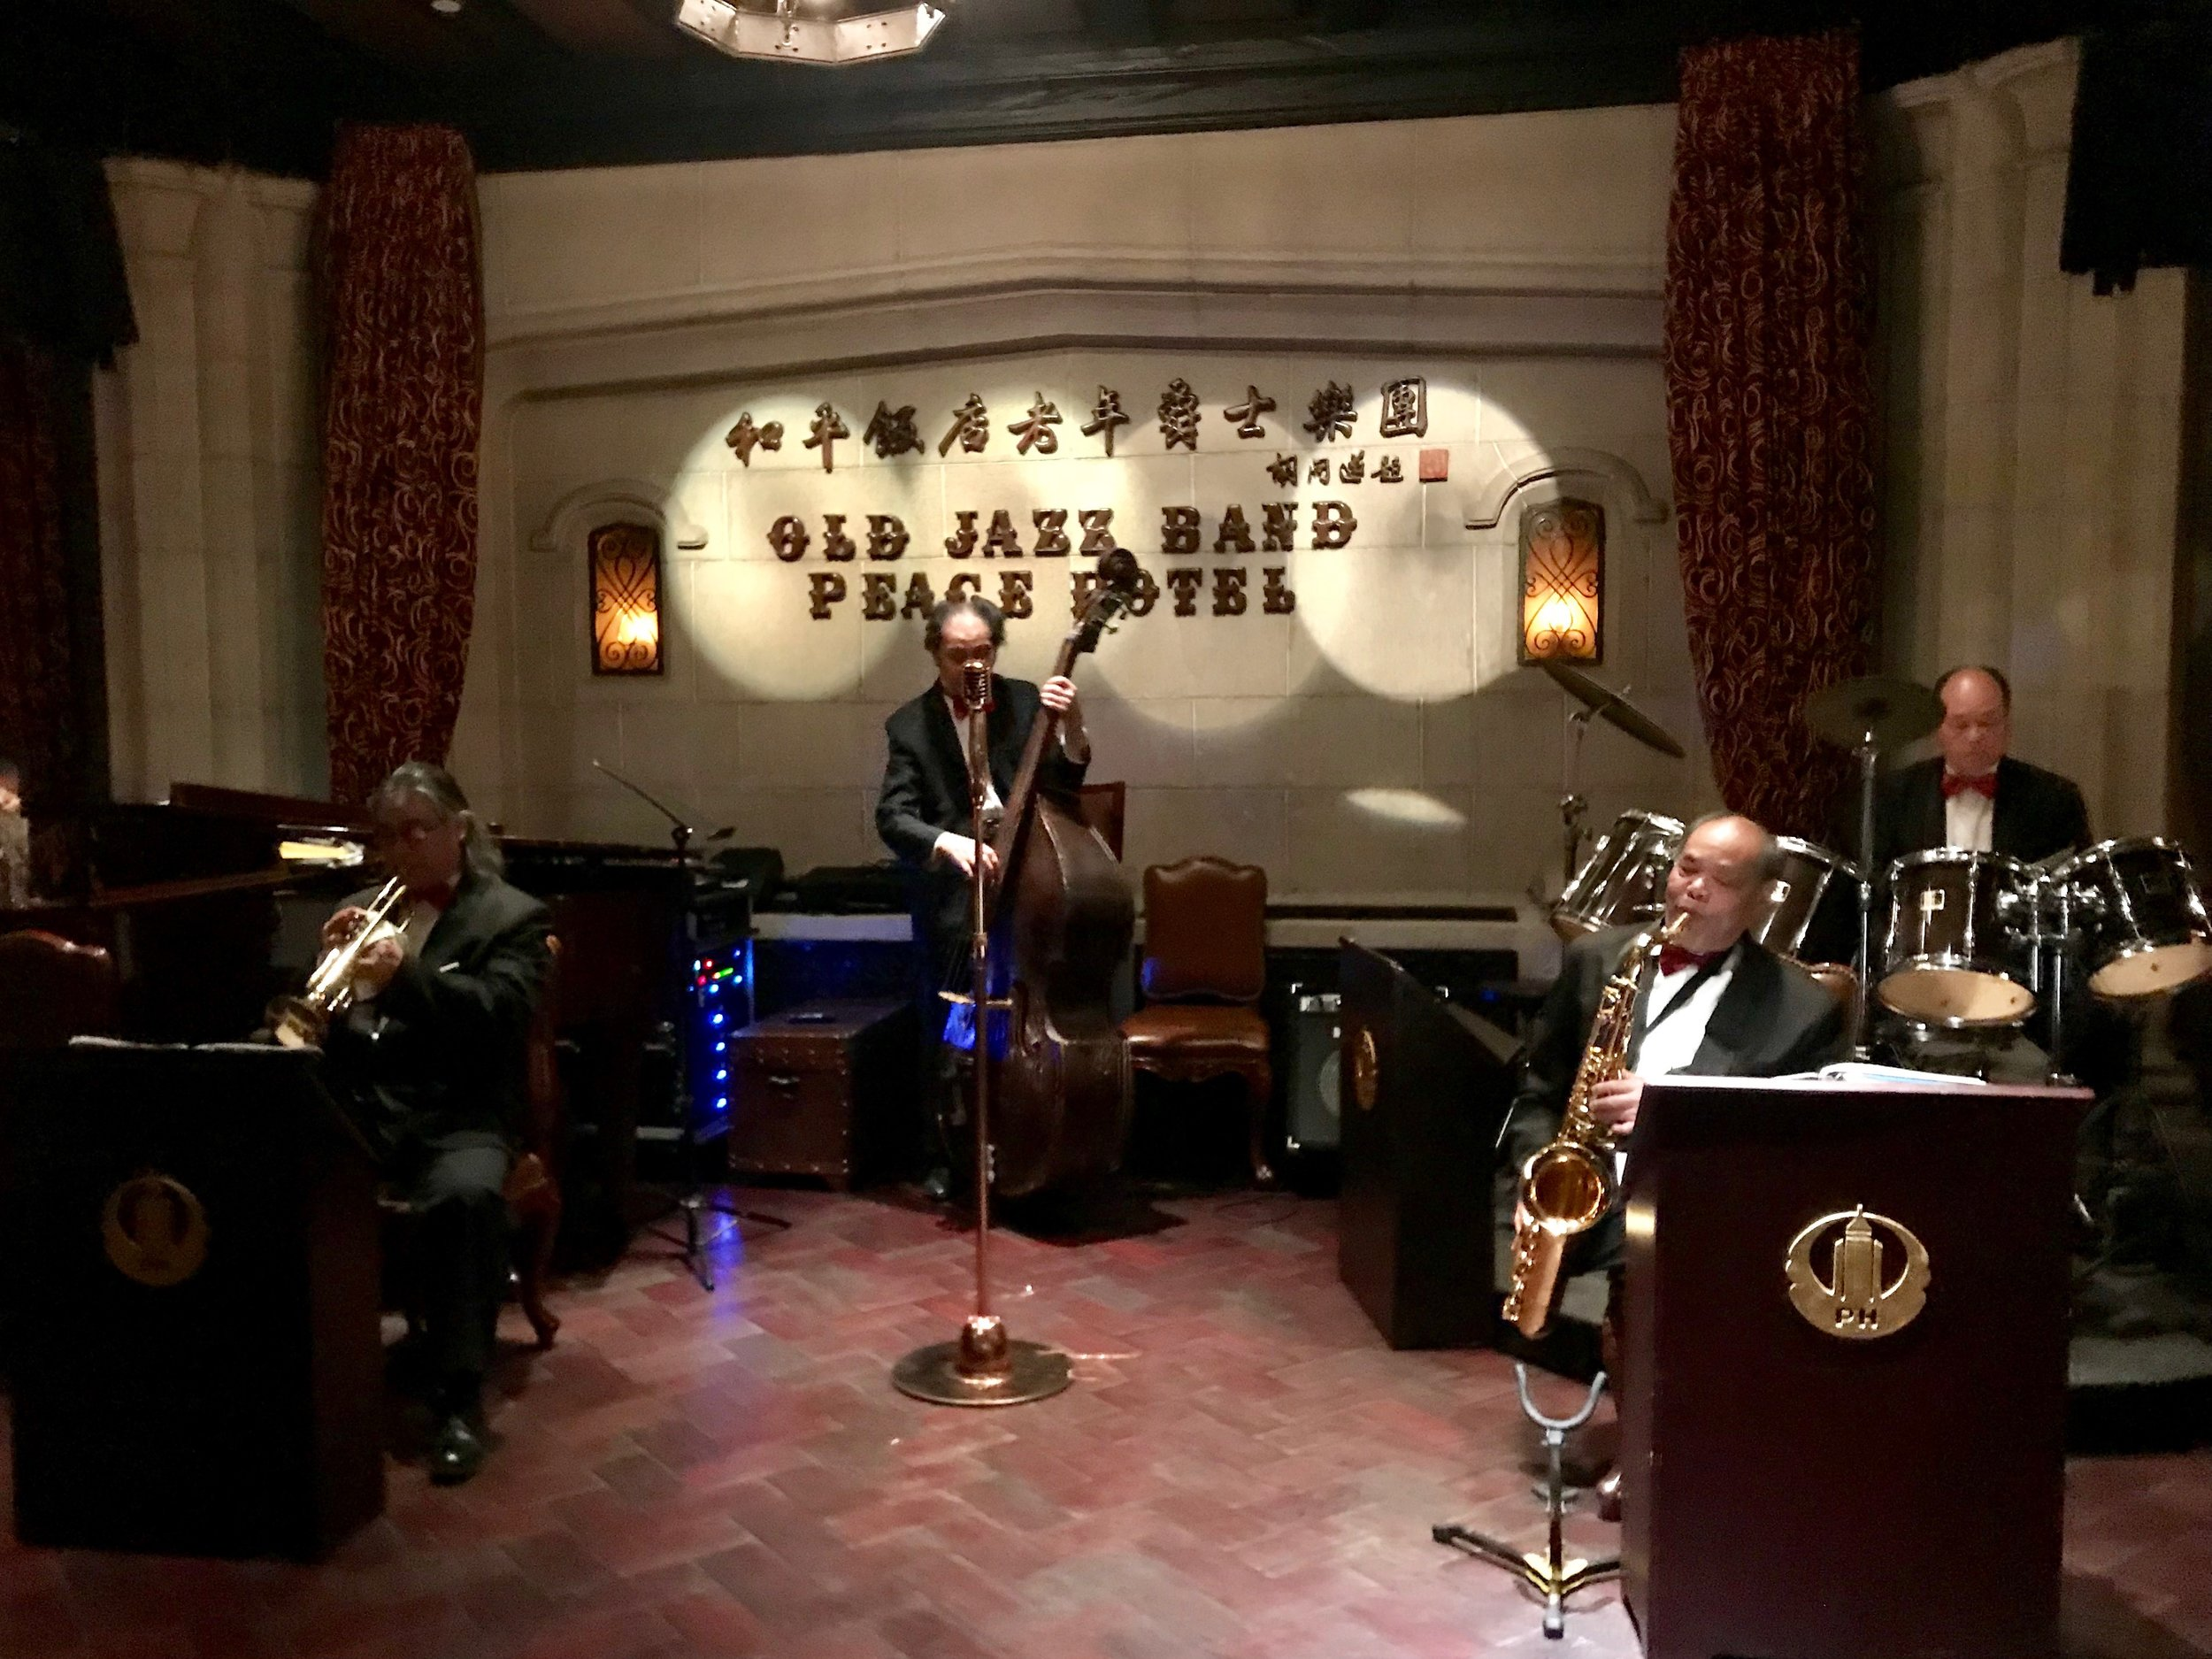 Old Jazz Band performs every night. [Nicholas Zhang Archives]